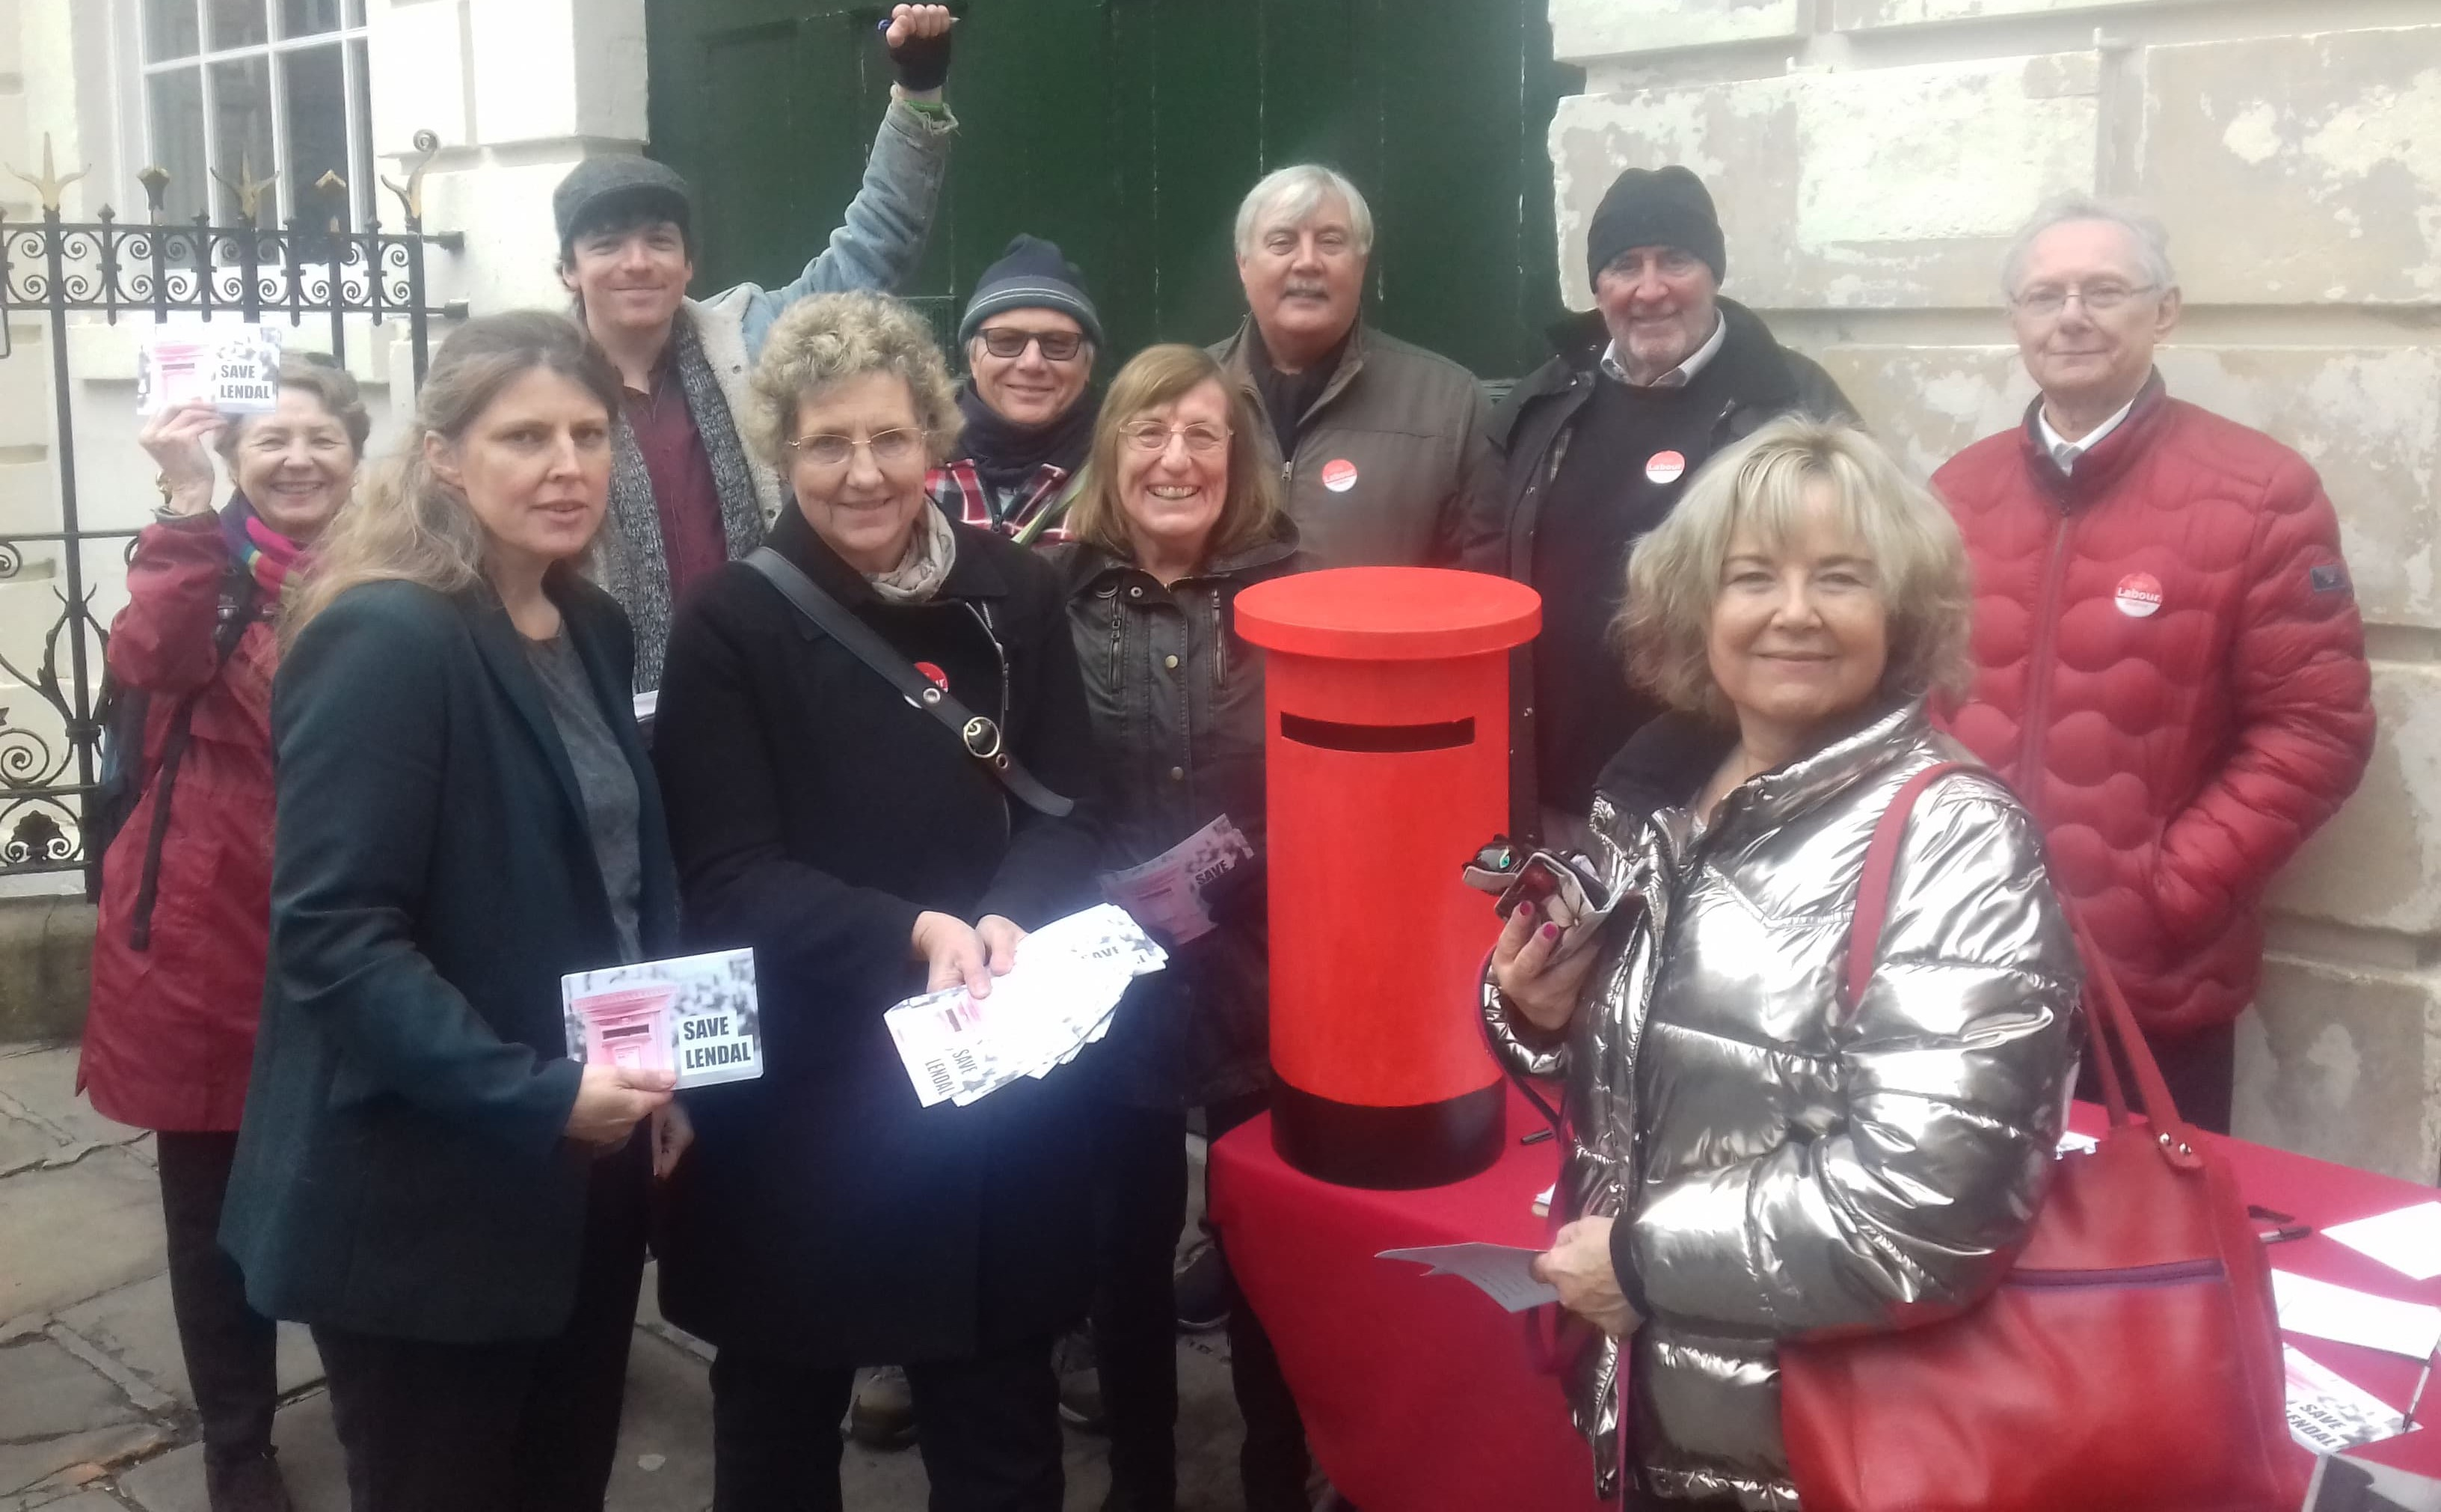 House of Commons: Save Lendal Post Office